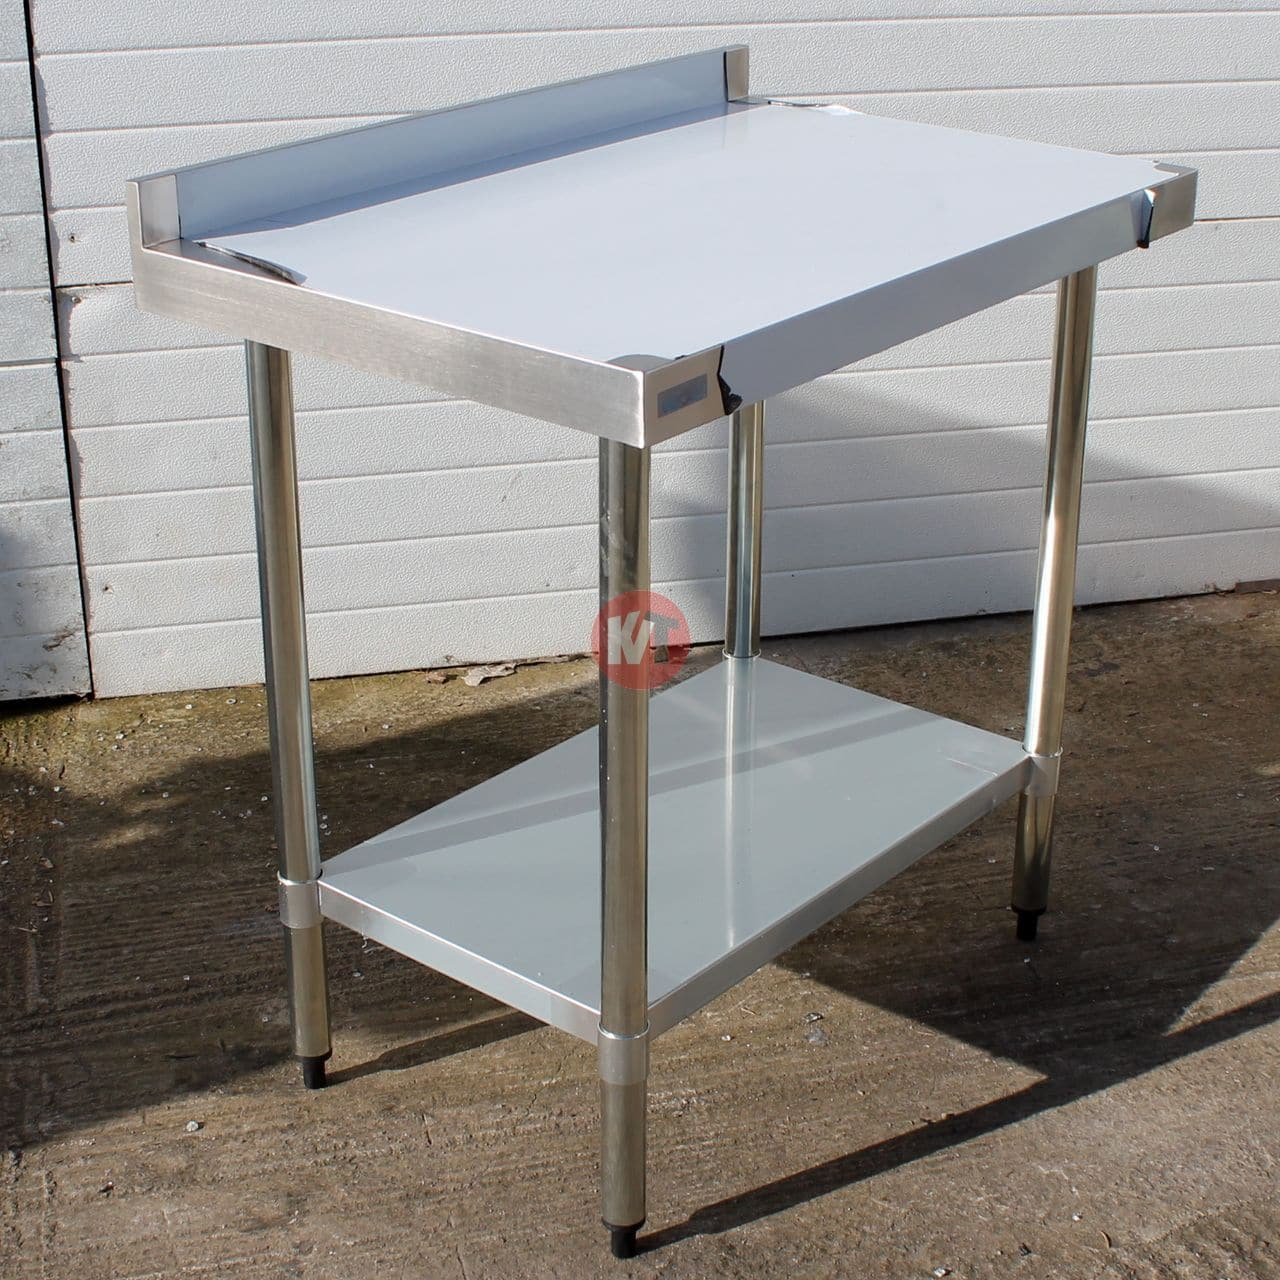 Table Inox Professionnel Table Inox Démontable – Kvt Occasions